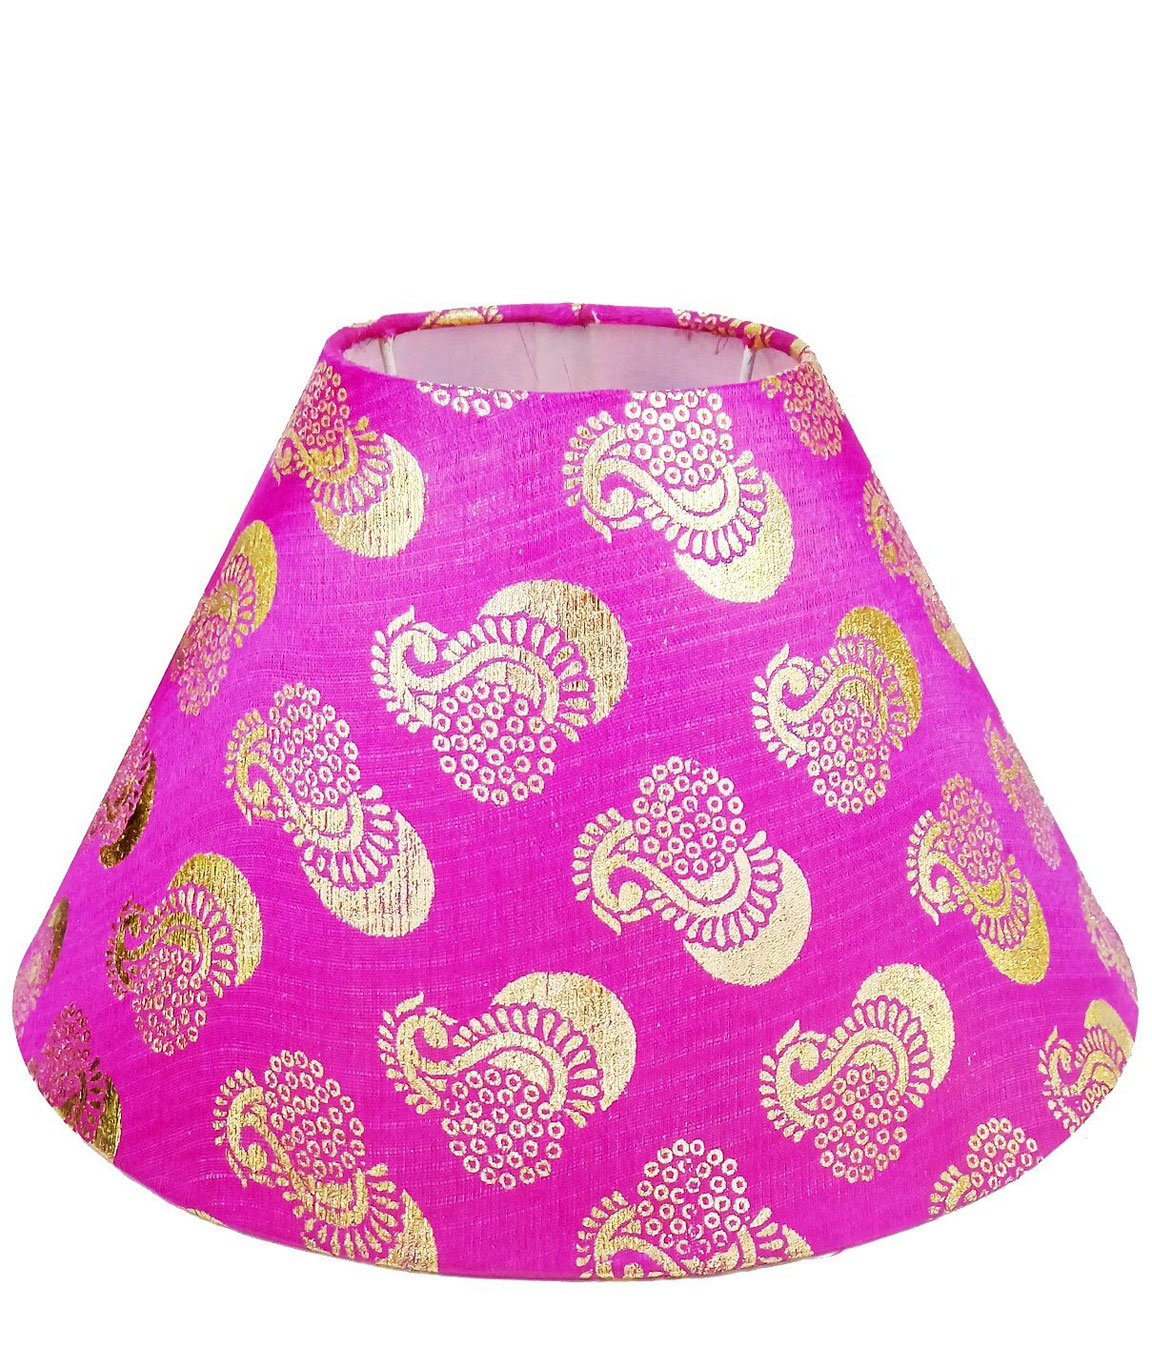 RDC 10 Inches Round Pink with Golden Designer Lamp Shade